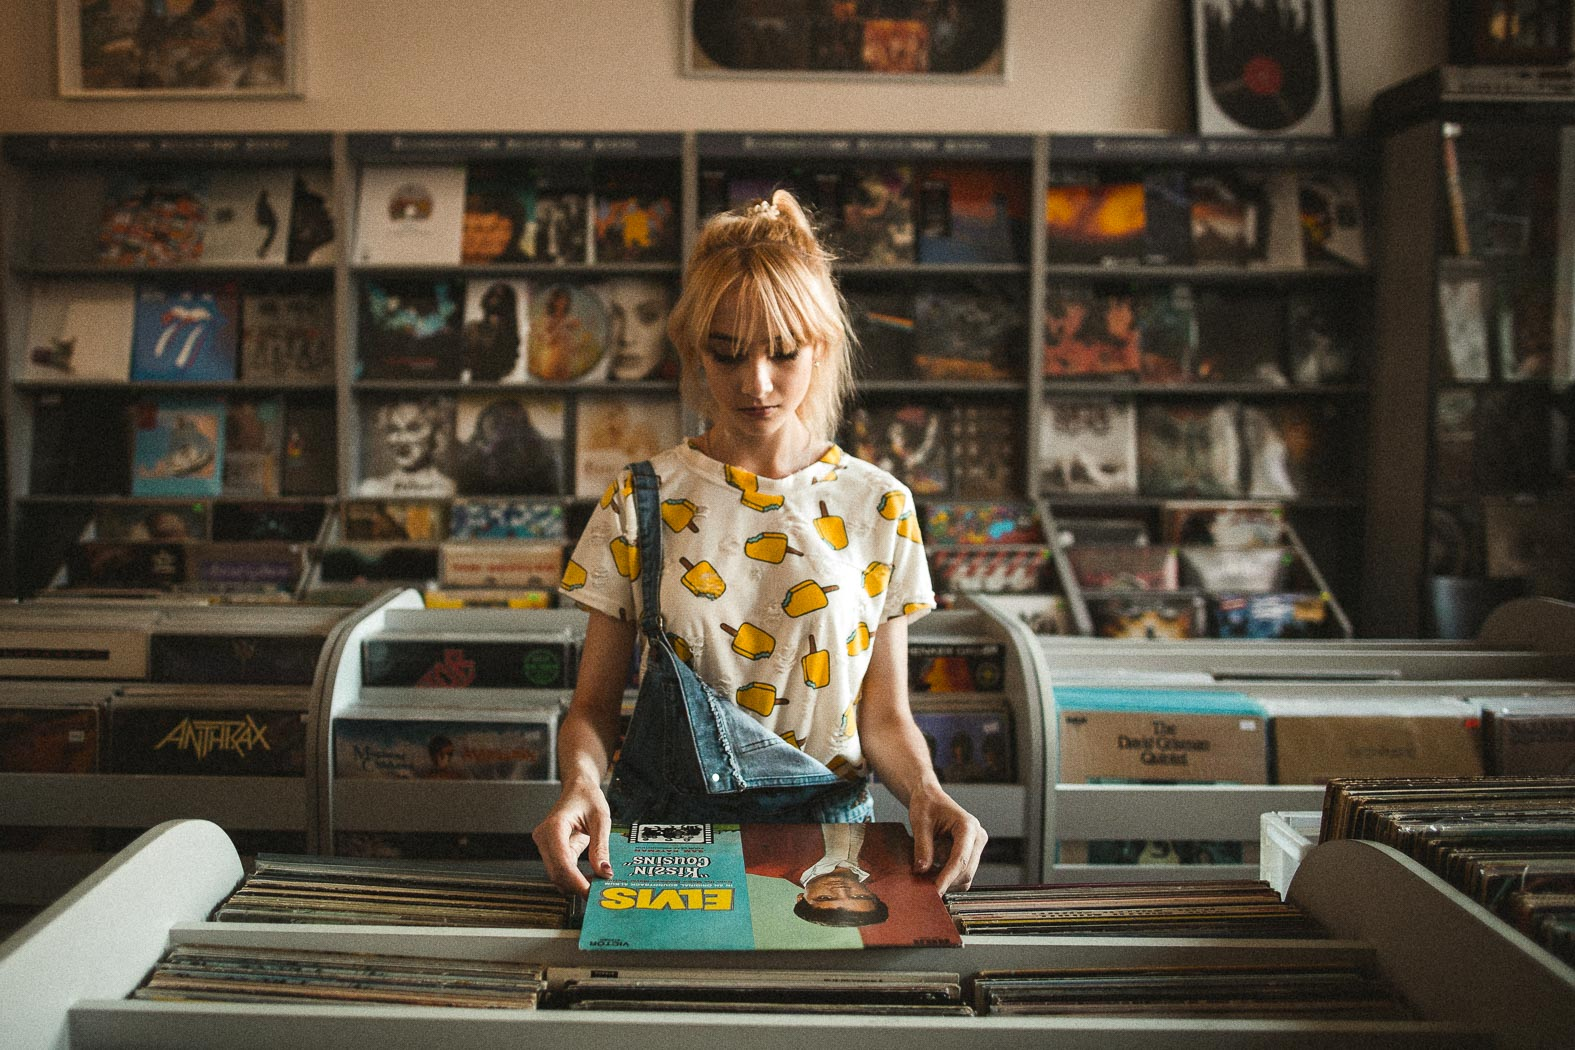 woman at a record store looking at records